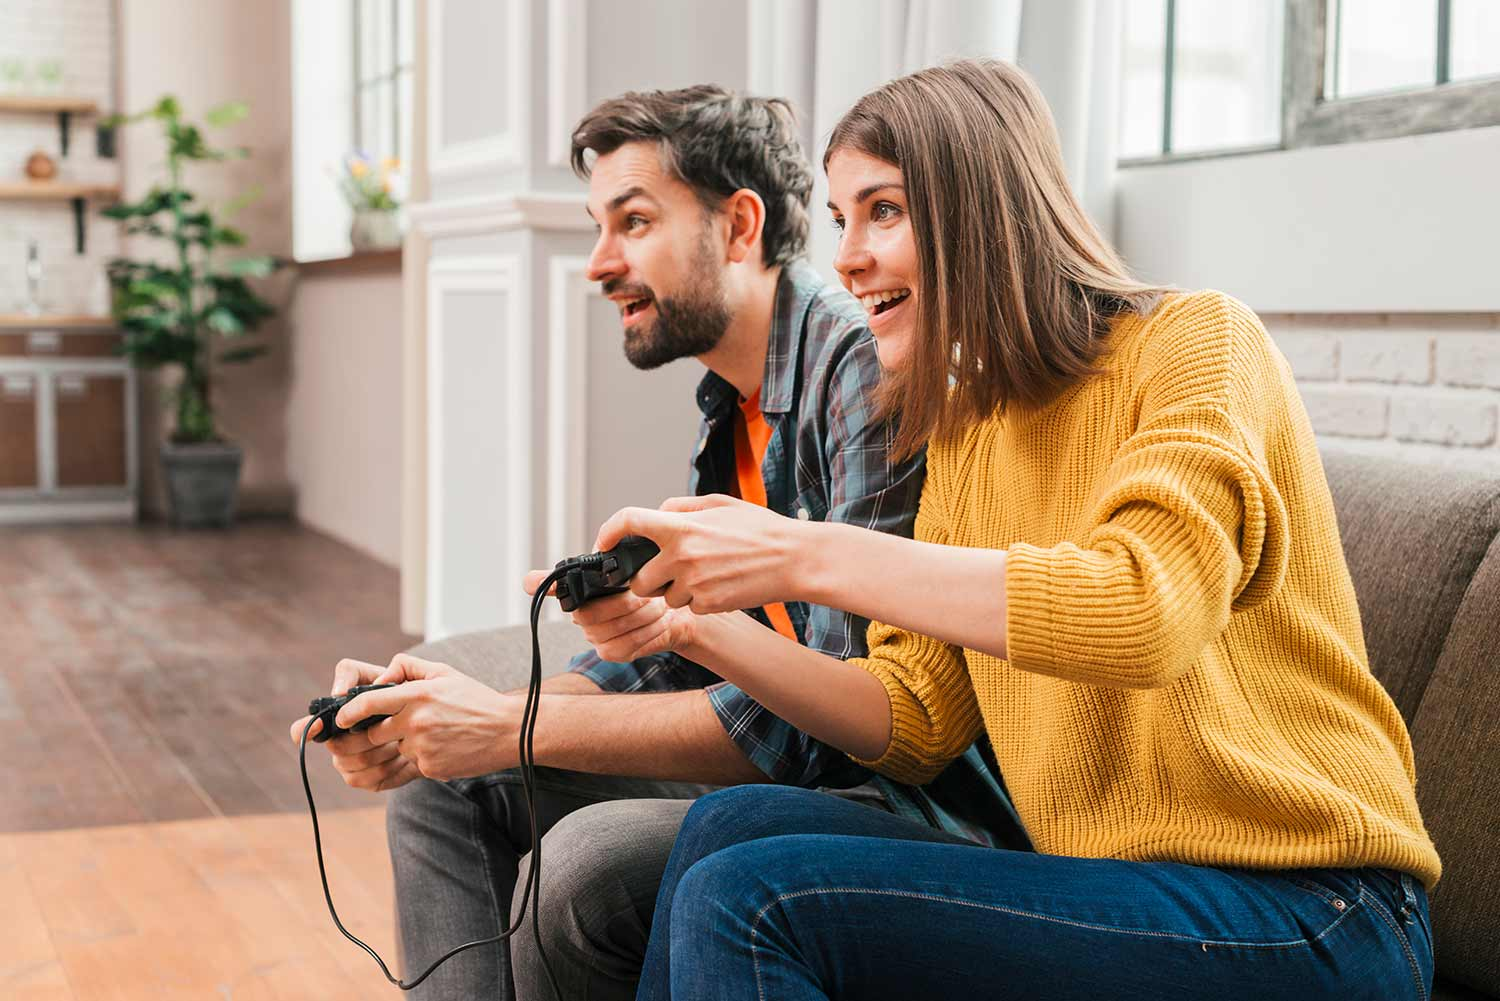 Young couple playing video game on gamer anniversary